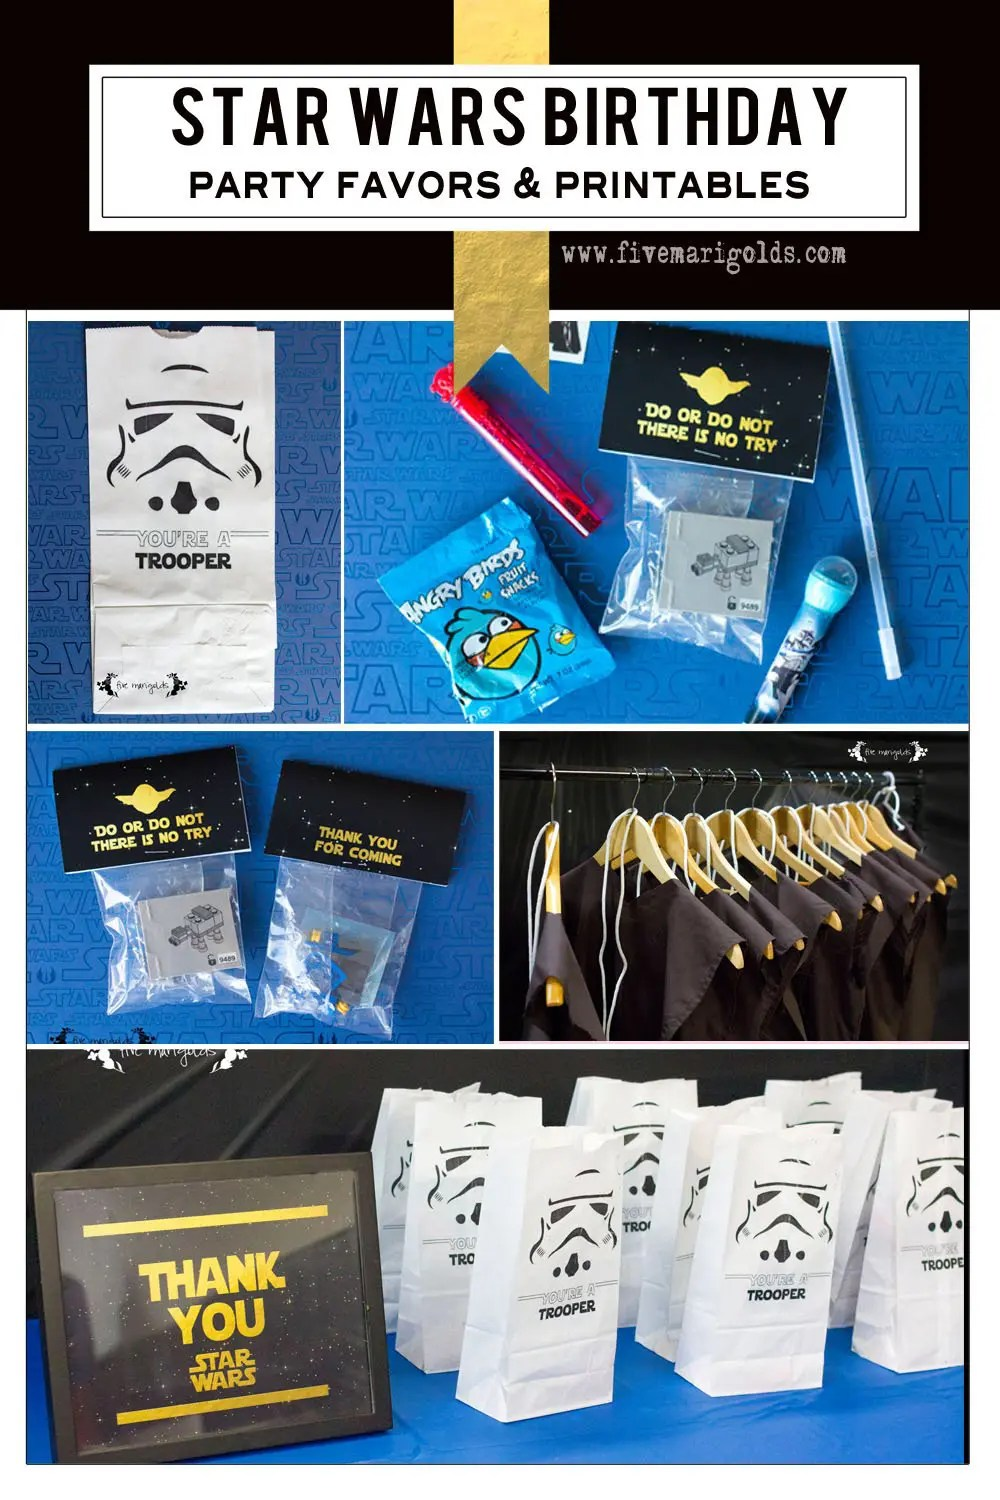 Super creative ideas for Star Wars Birthday favors with Legos